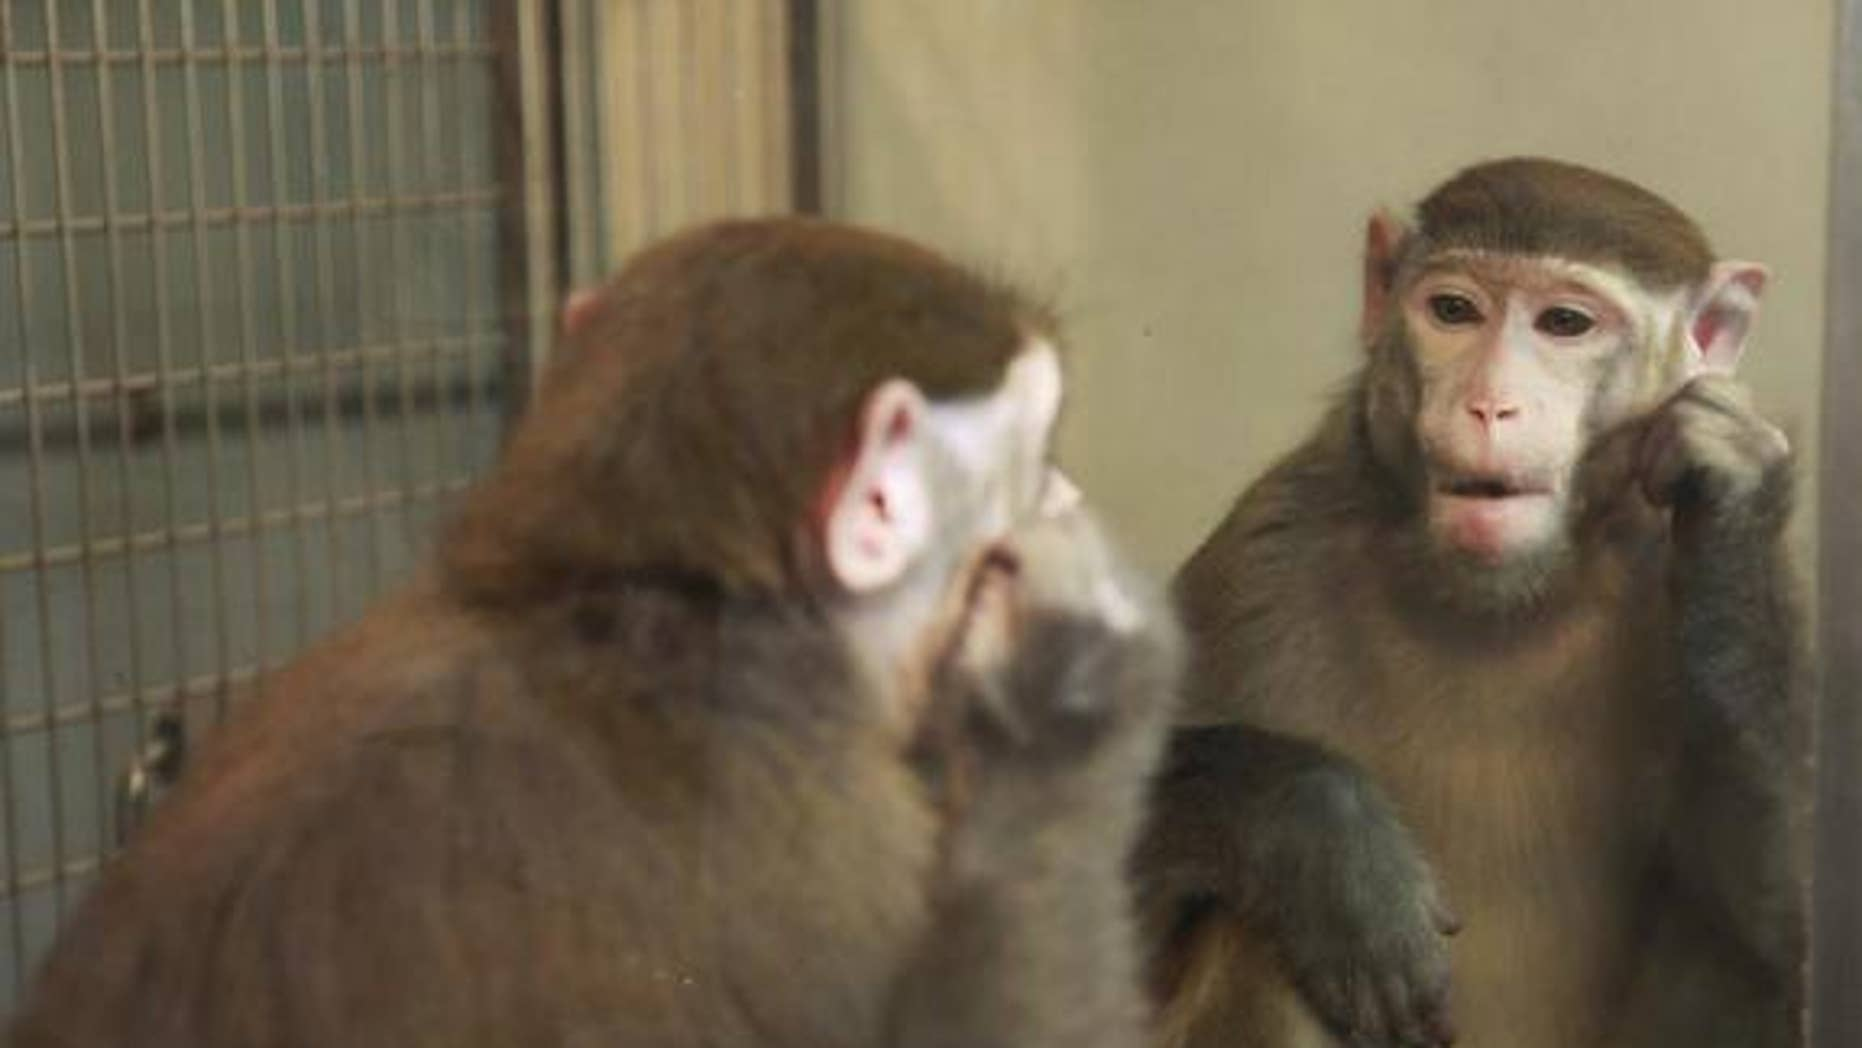 Humans aren't the only animals that can recognize themselves in the mirror. A new study suggests that monkeys can, too, with a little training.